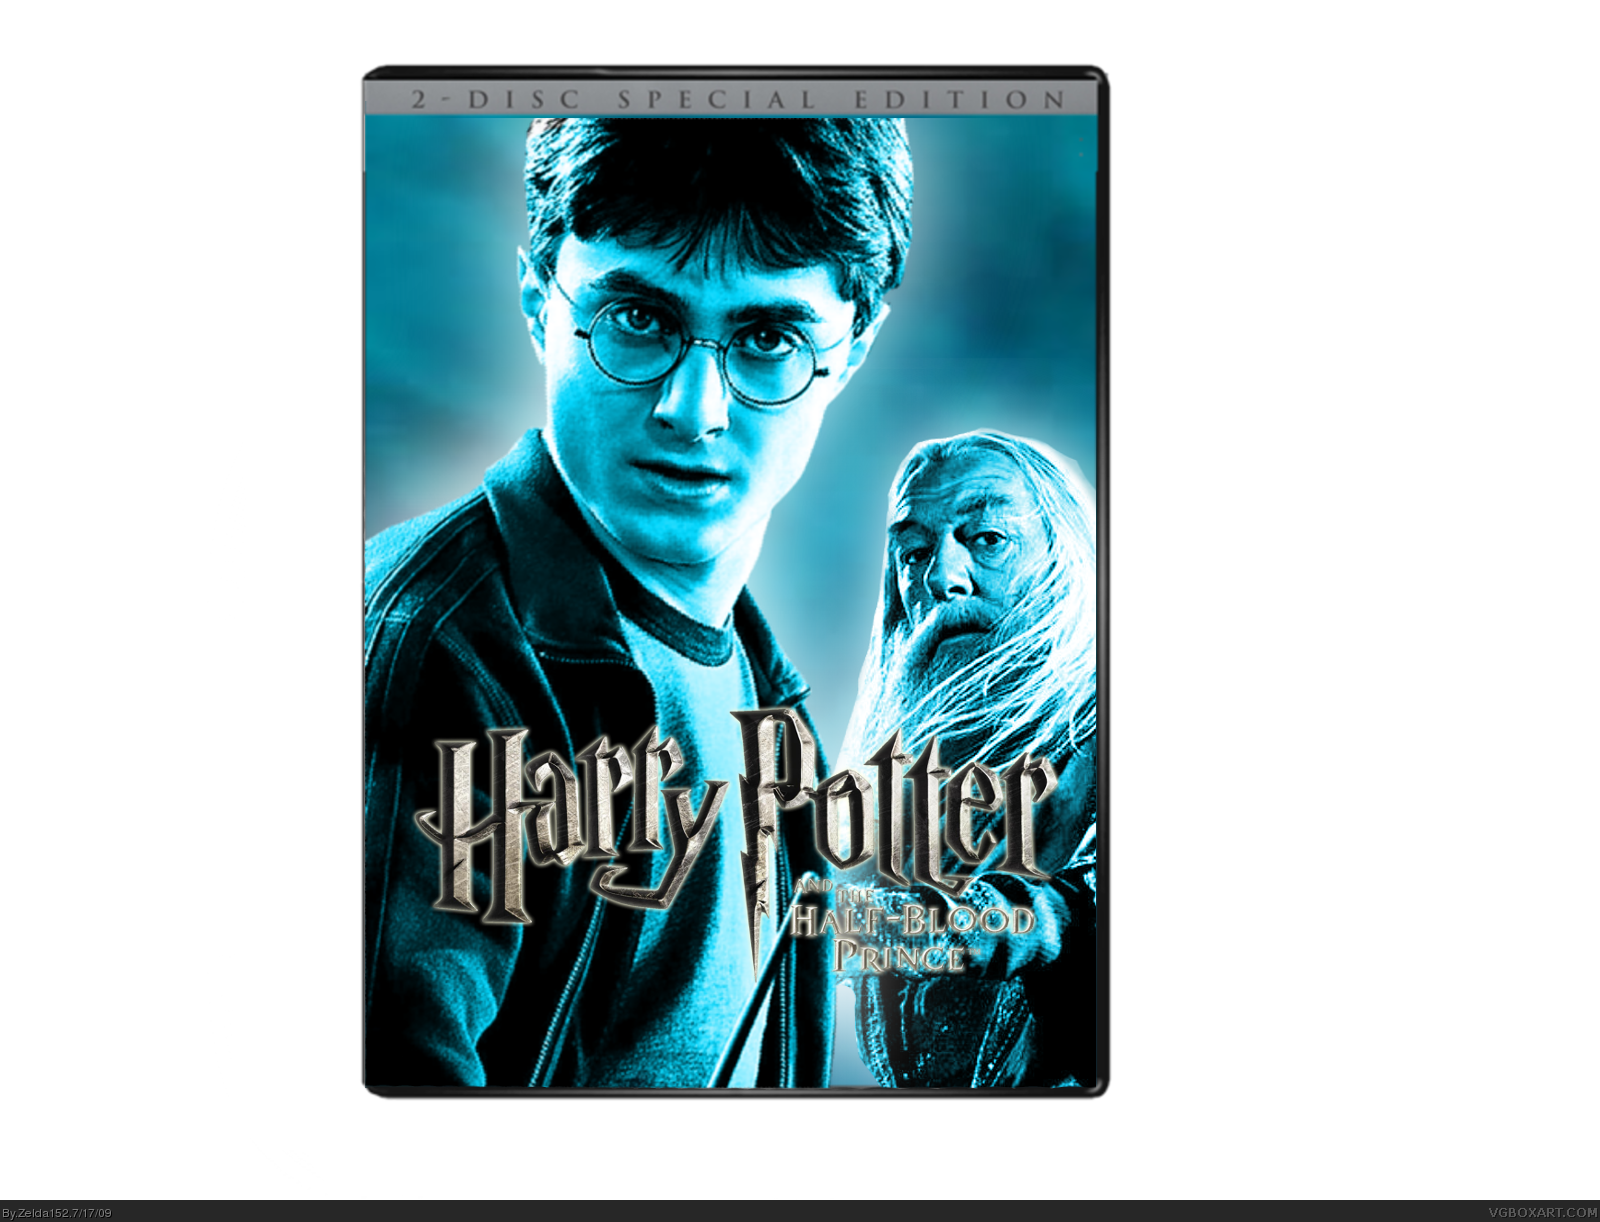 Harry Potter Book Cover Png : Harry potter and the half blood prince movies box art